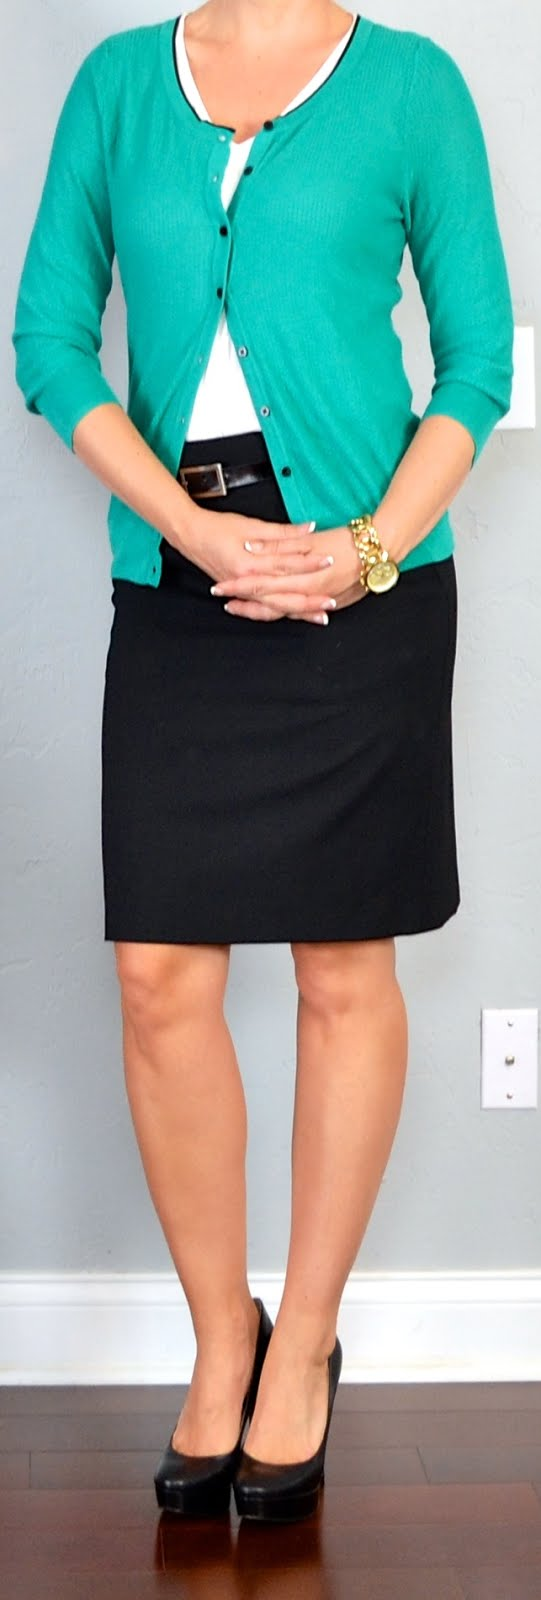 Outfit Posts Green Cardigan Black Pencil Skirt